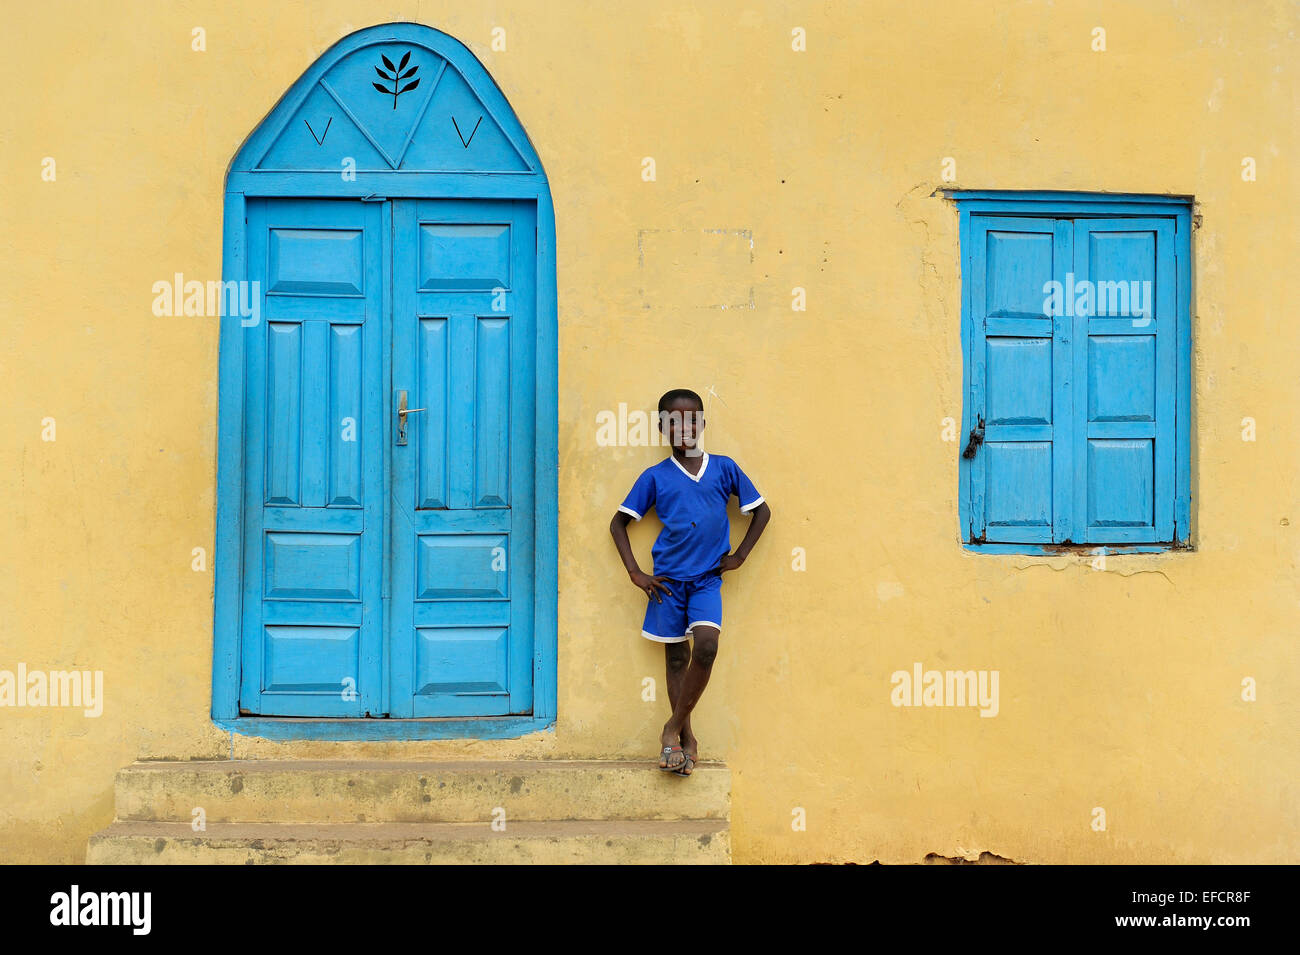 A boy in blue in front of a church in Esiam, Ghana, West Africa. - Stock Image